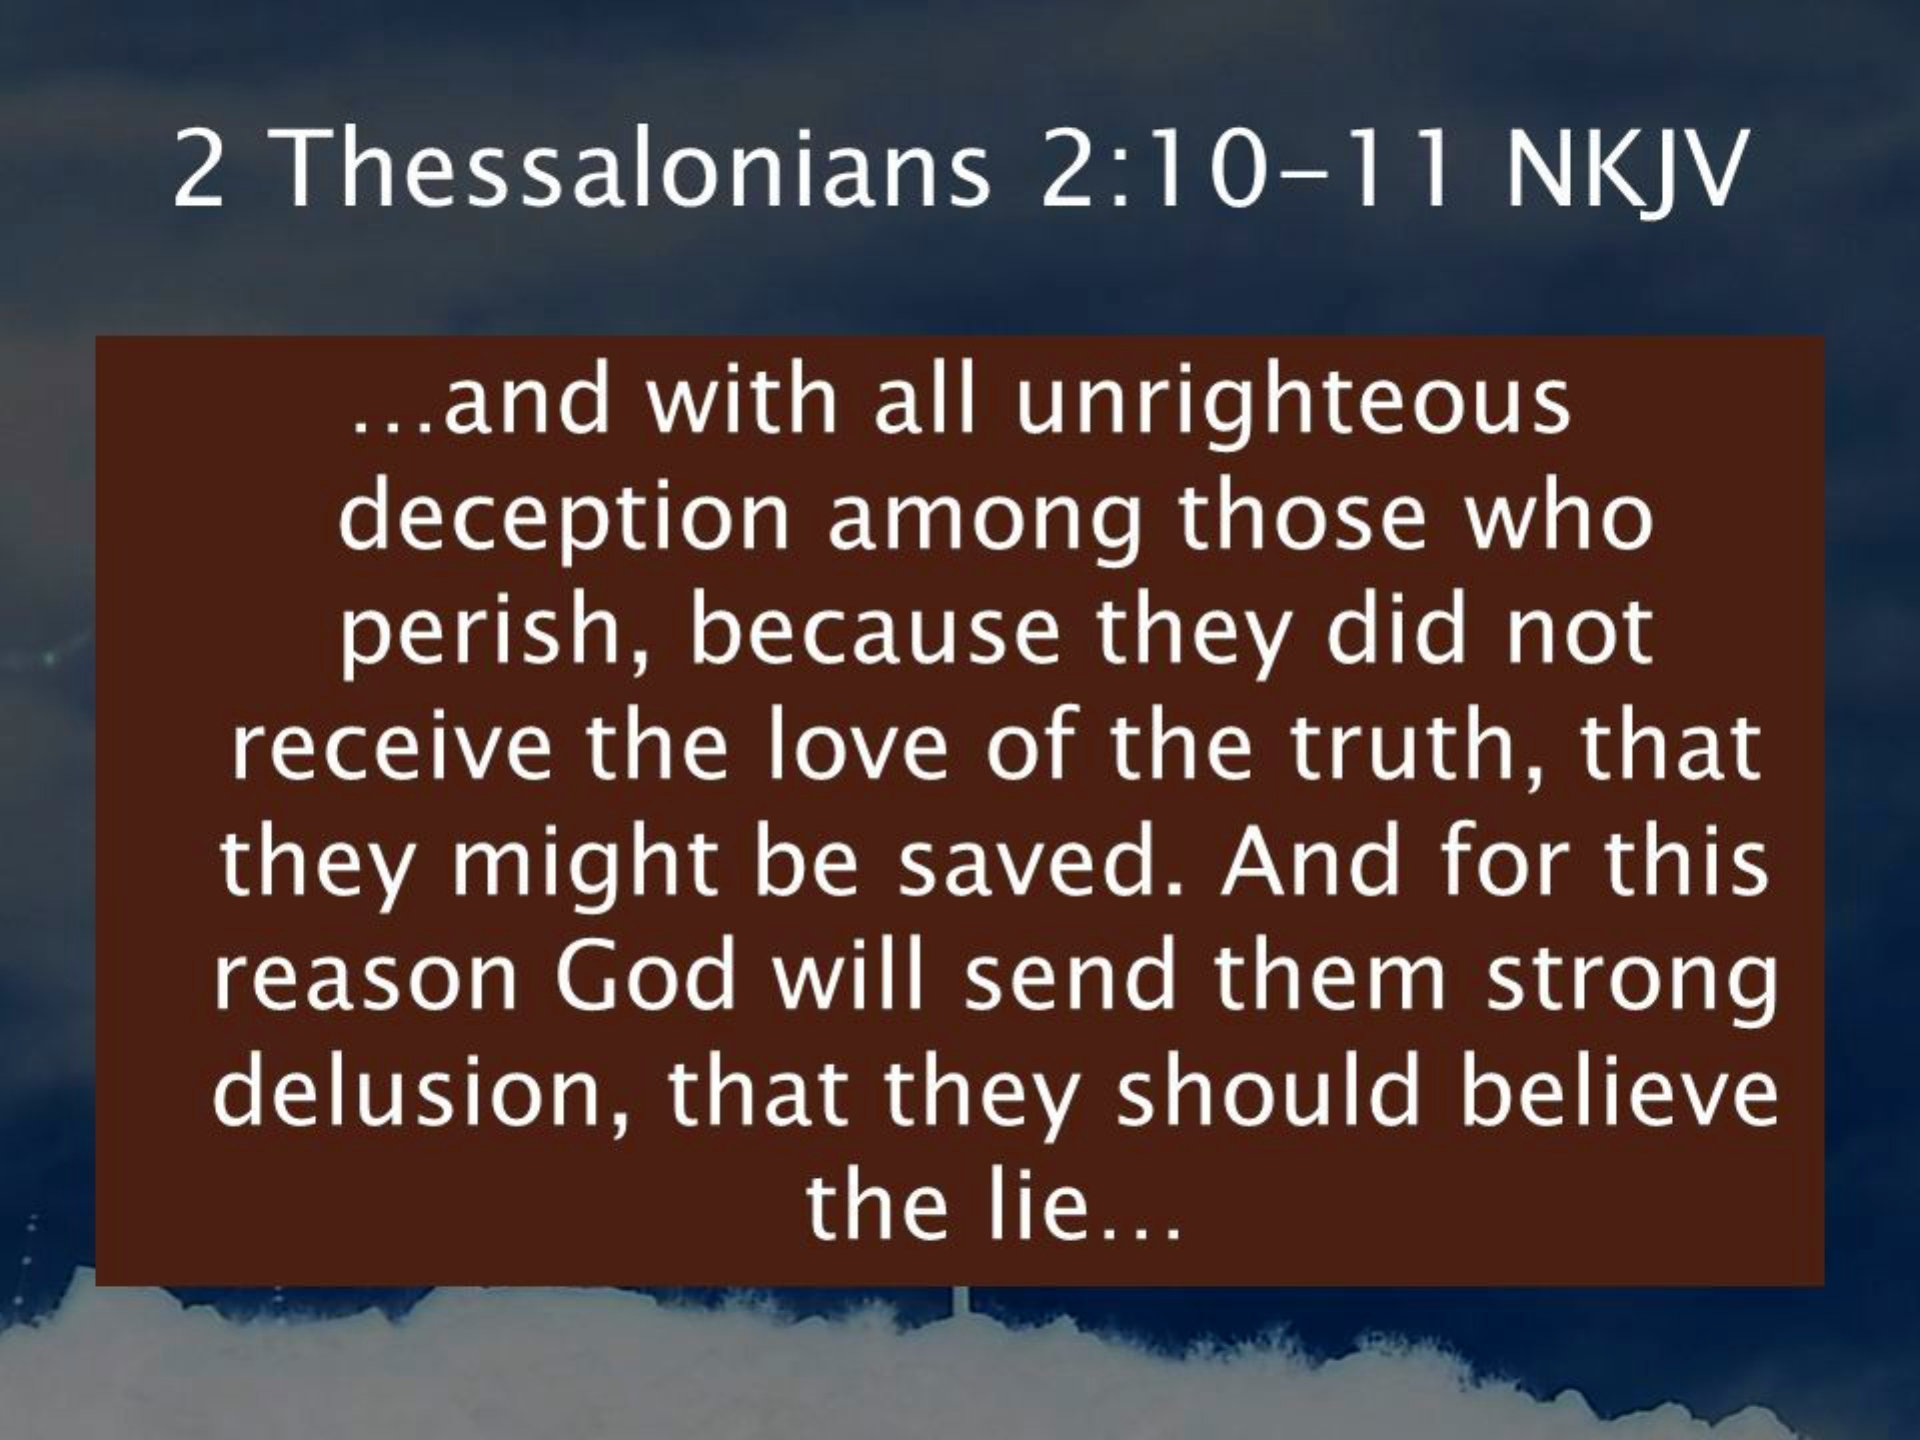 2 Thessalonians 2:10,11